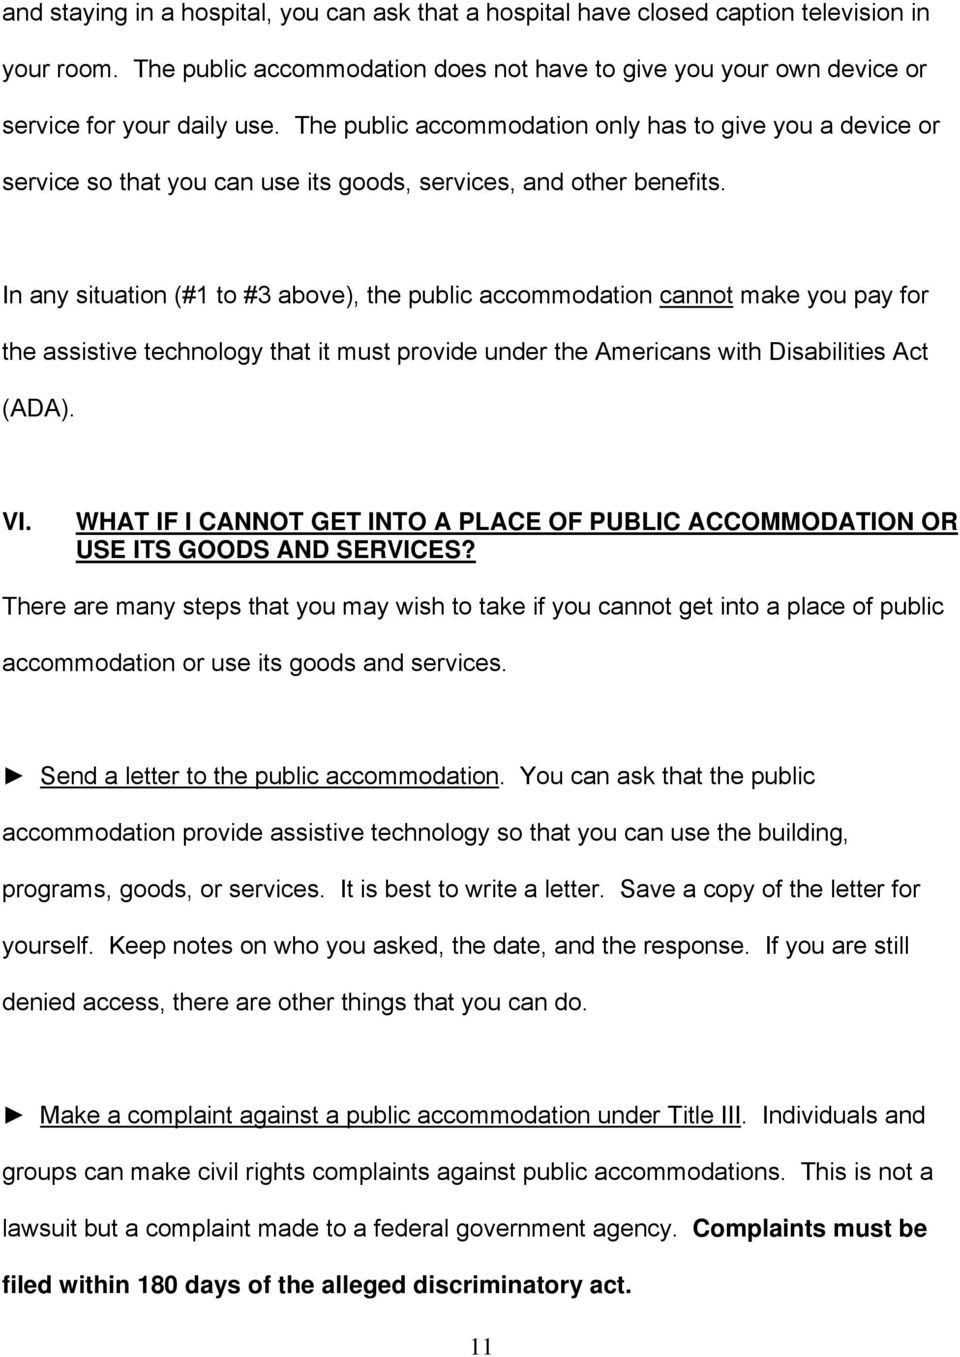 In any situation (#1 to #3 above), the public accommodation cannot make you pay for the assistive technology that it must provide under the Americans with Disabilities Act (ADA). VI.